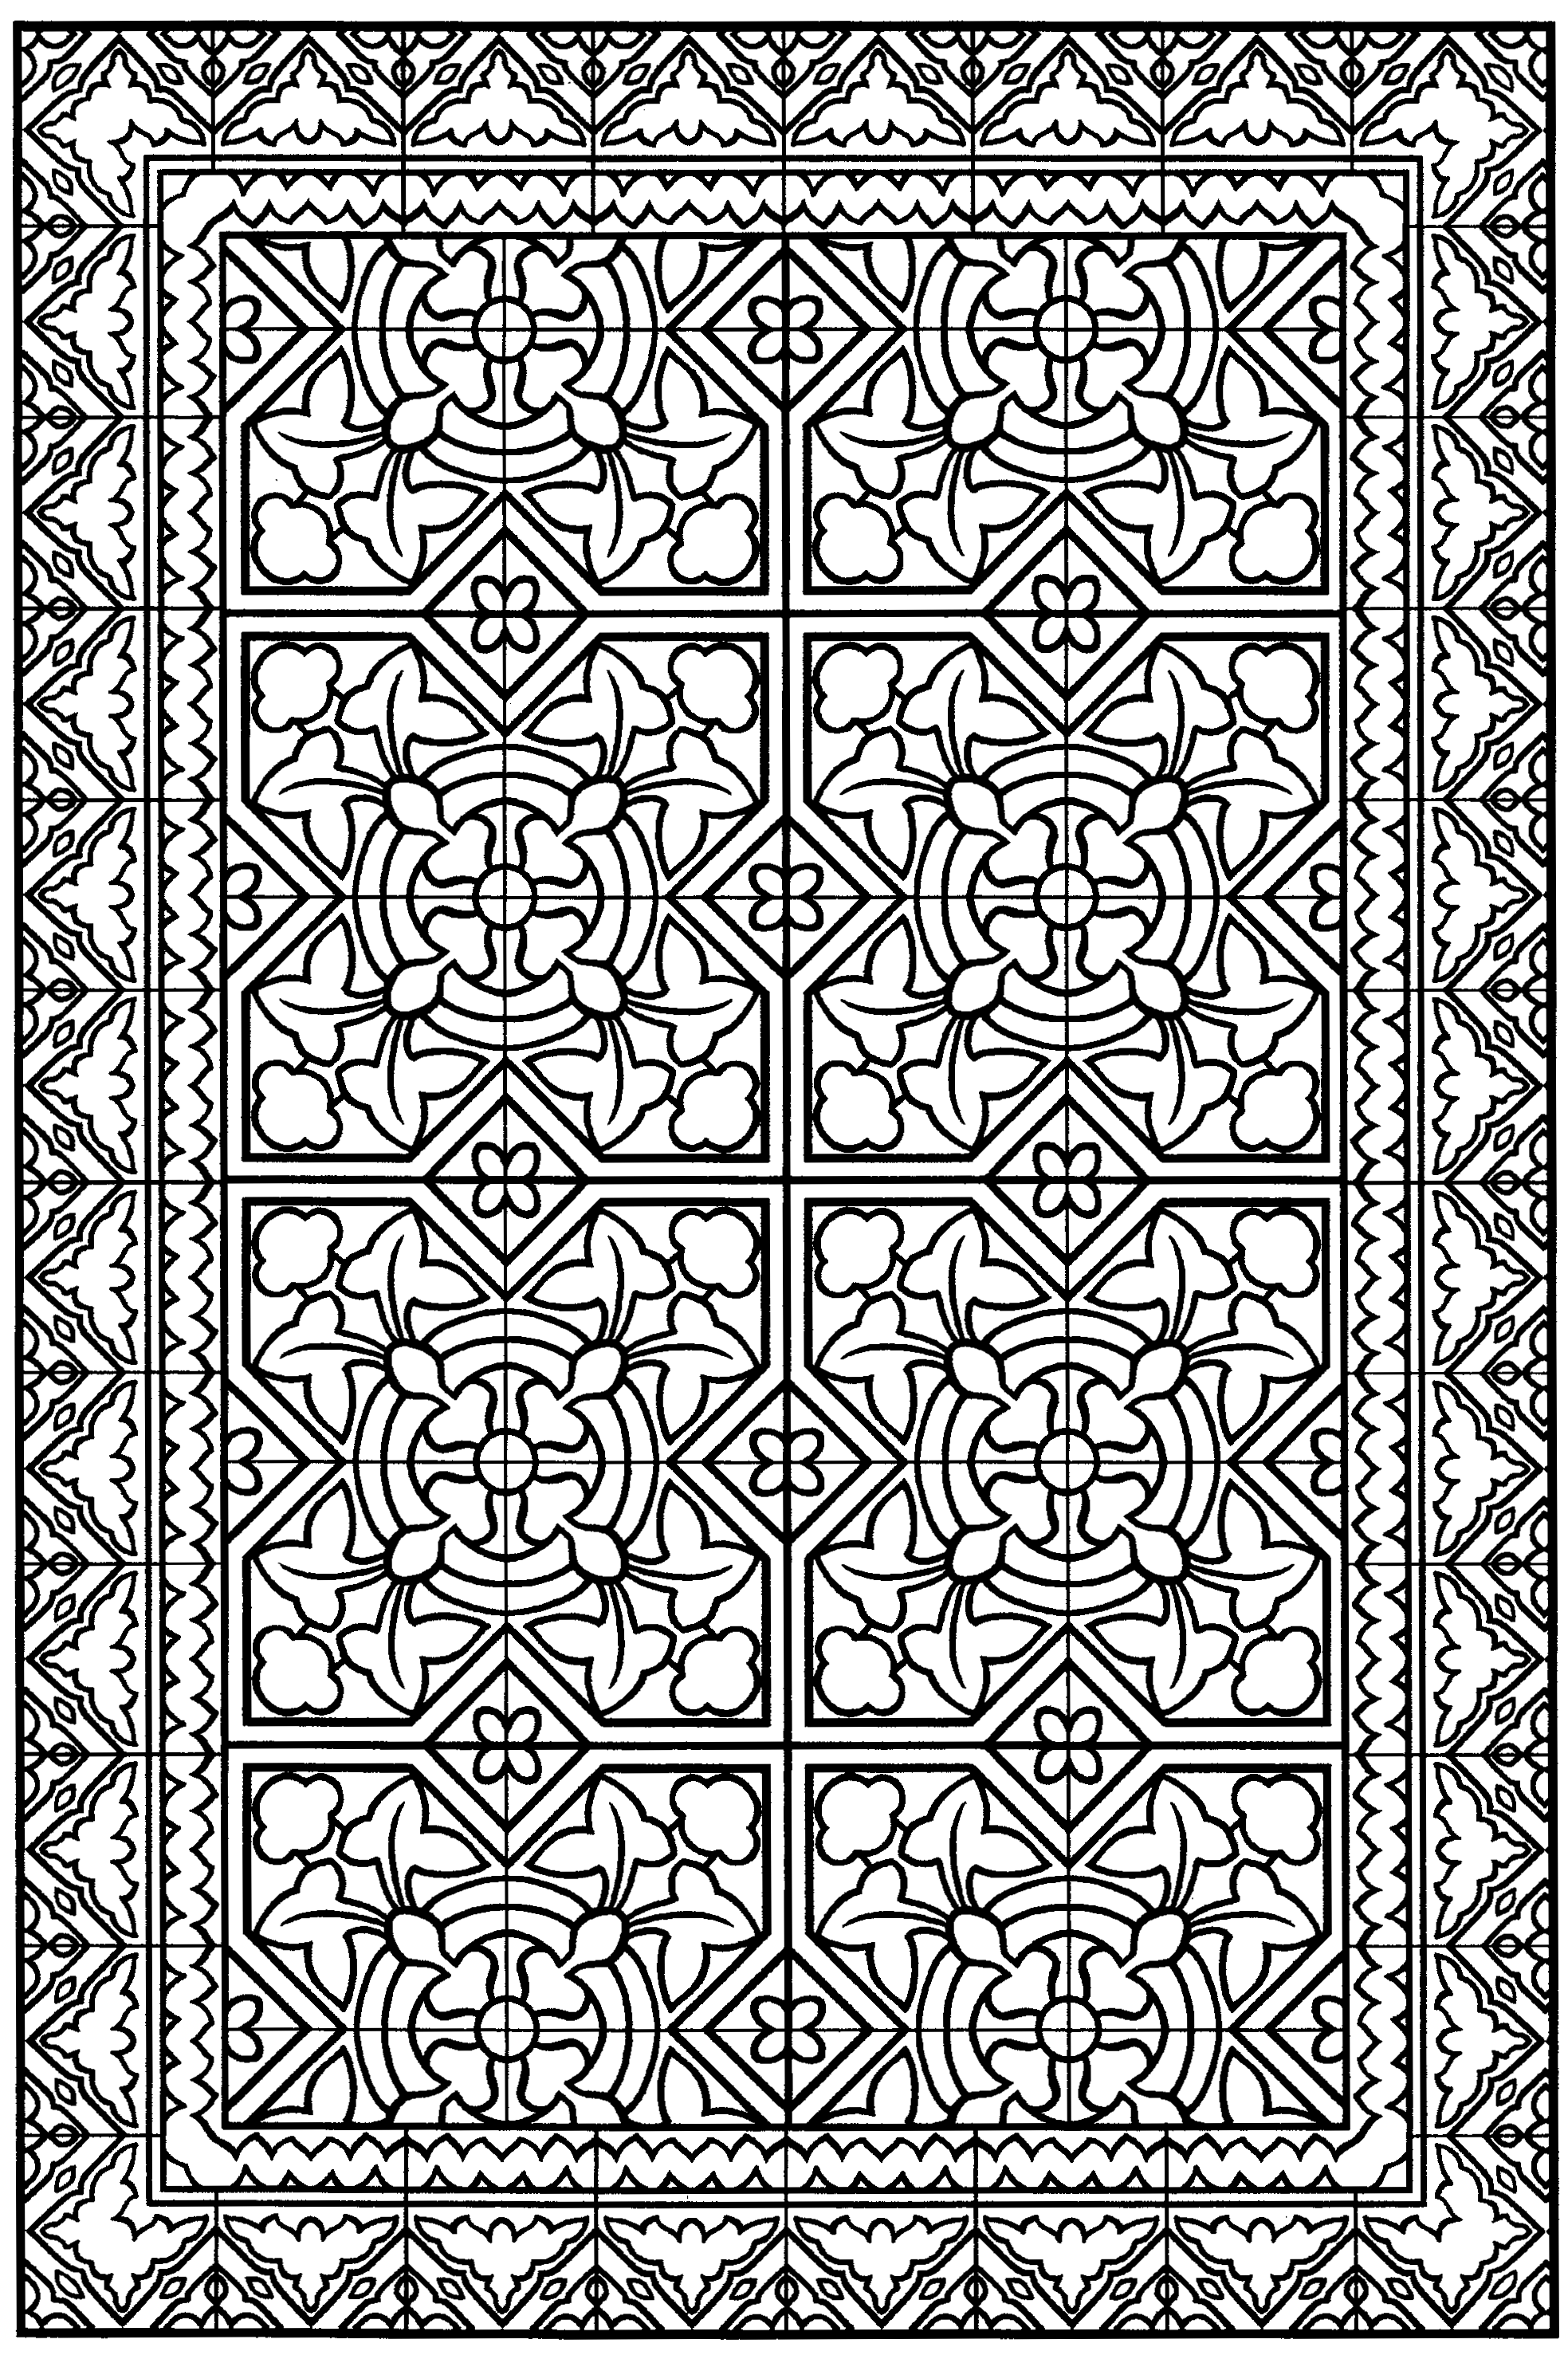 cool abstract coloring pages page 10 from decorative tile designs by marty noble pages cool abstract coloring